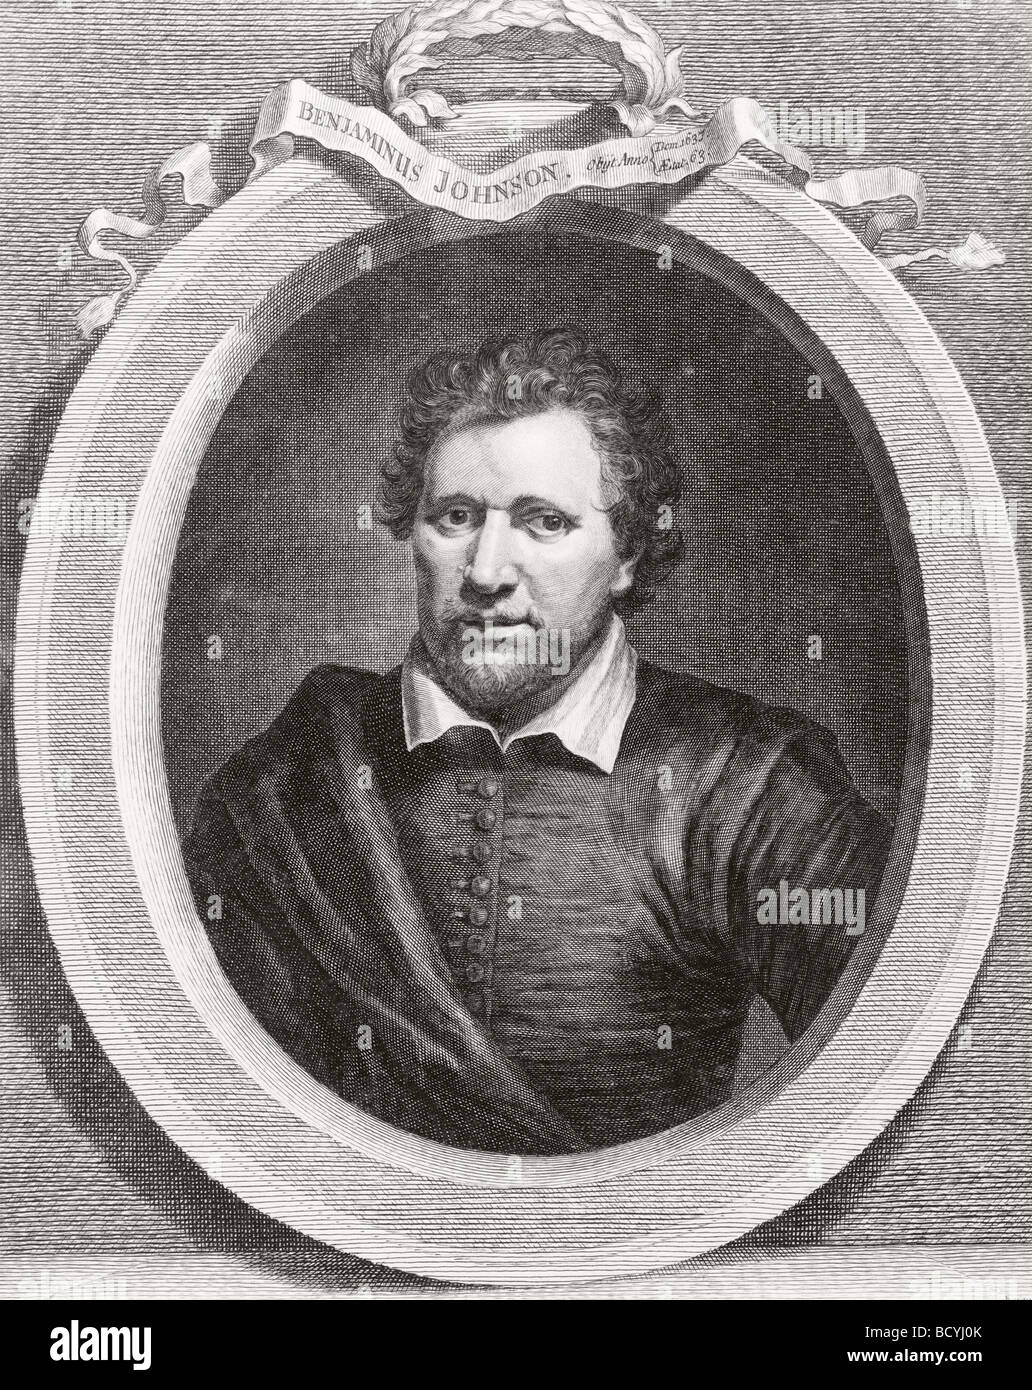 Ben Jonson, aka Benjamin Johnson, 1572 - 1637.  English Renaissance dramatist poet and actor. - Stock Image